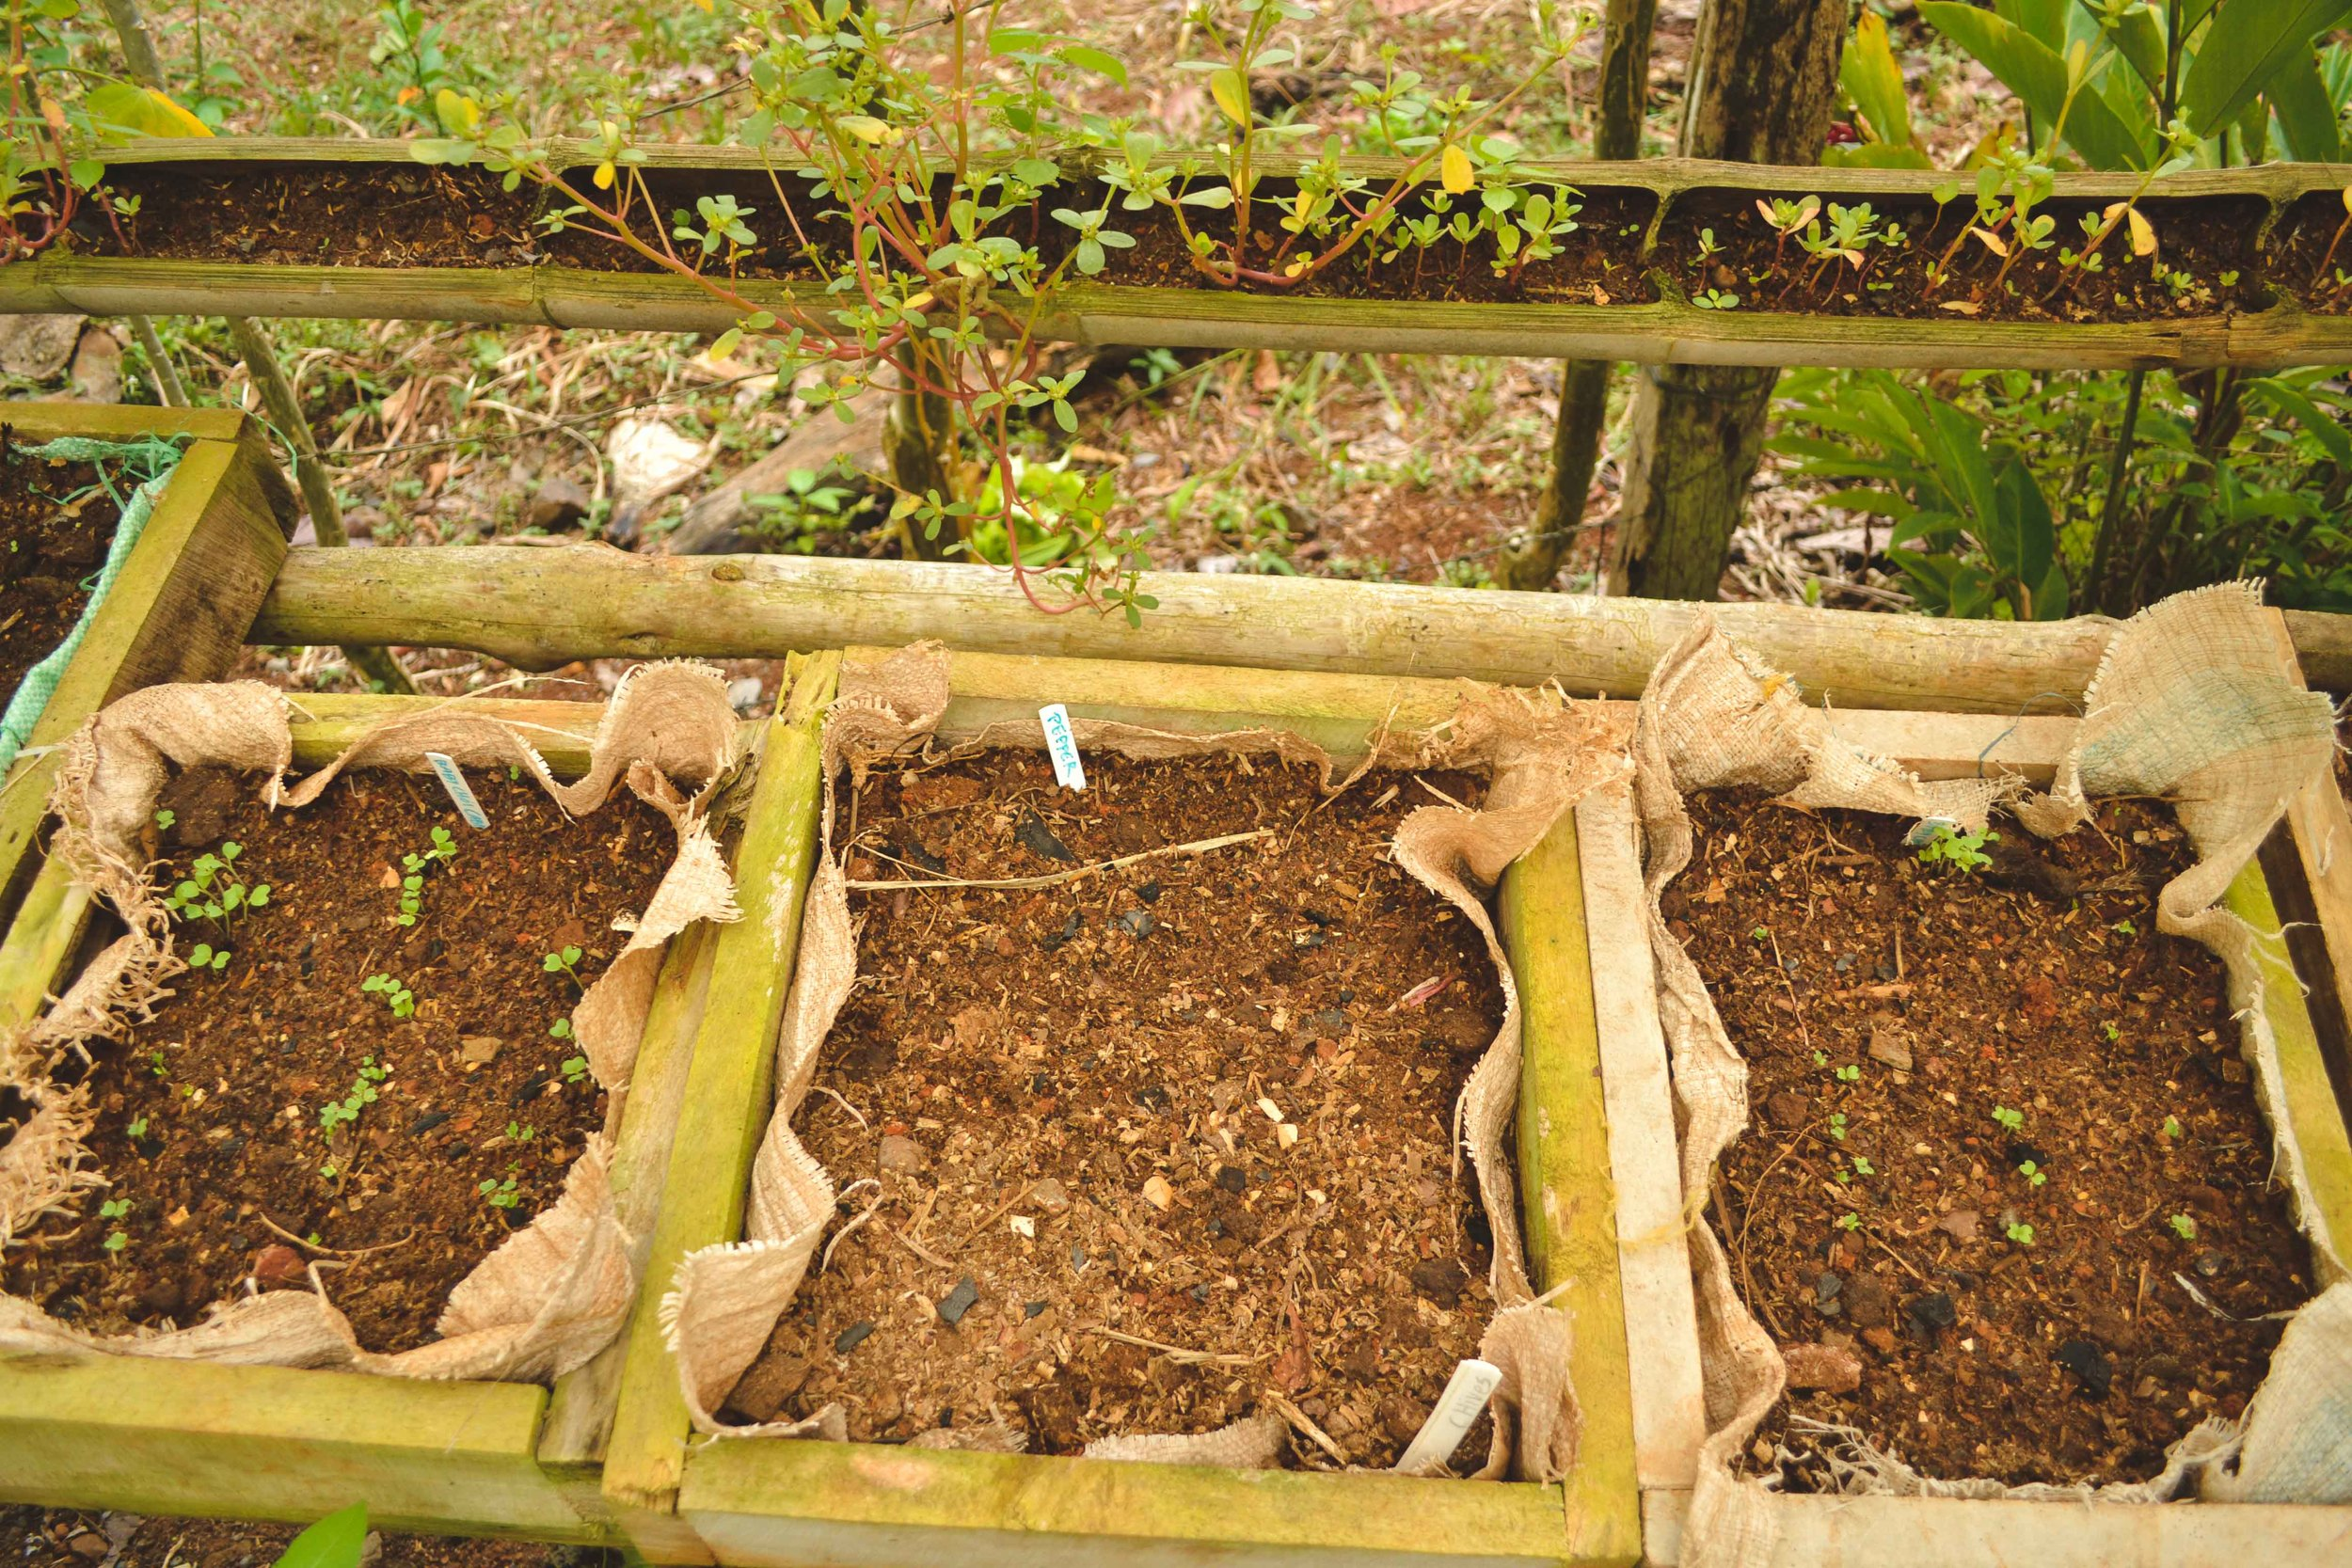 Wooden boxes hold starter seeds.